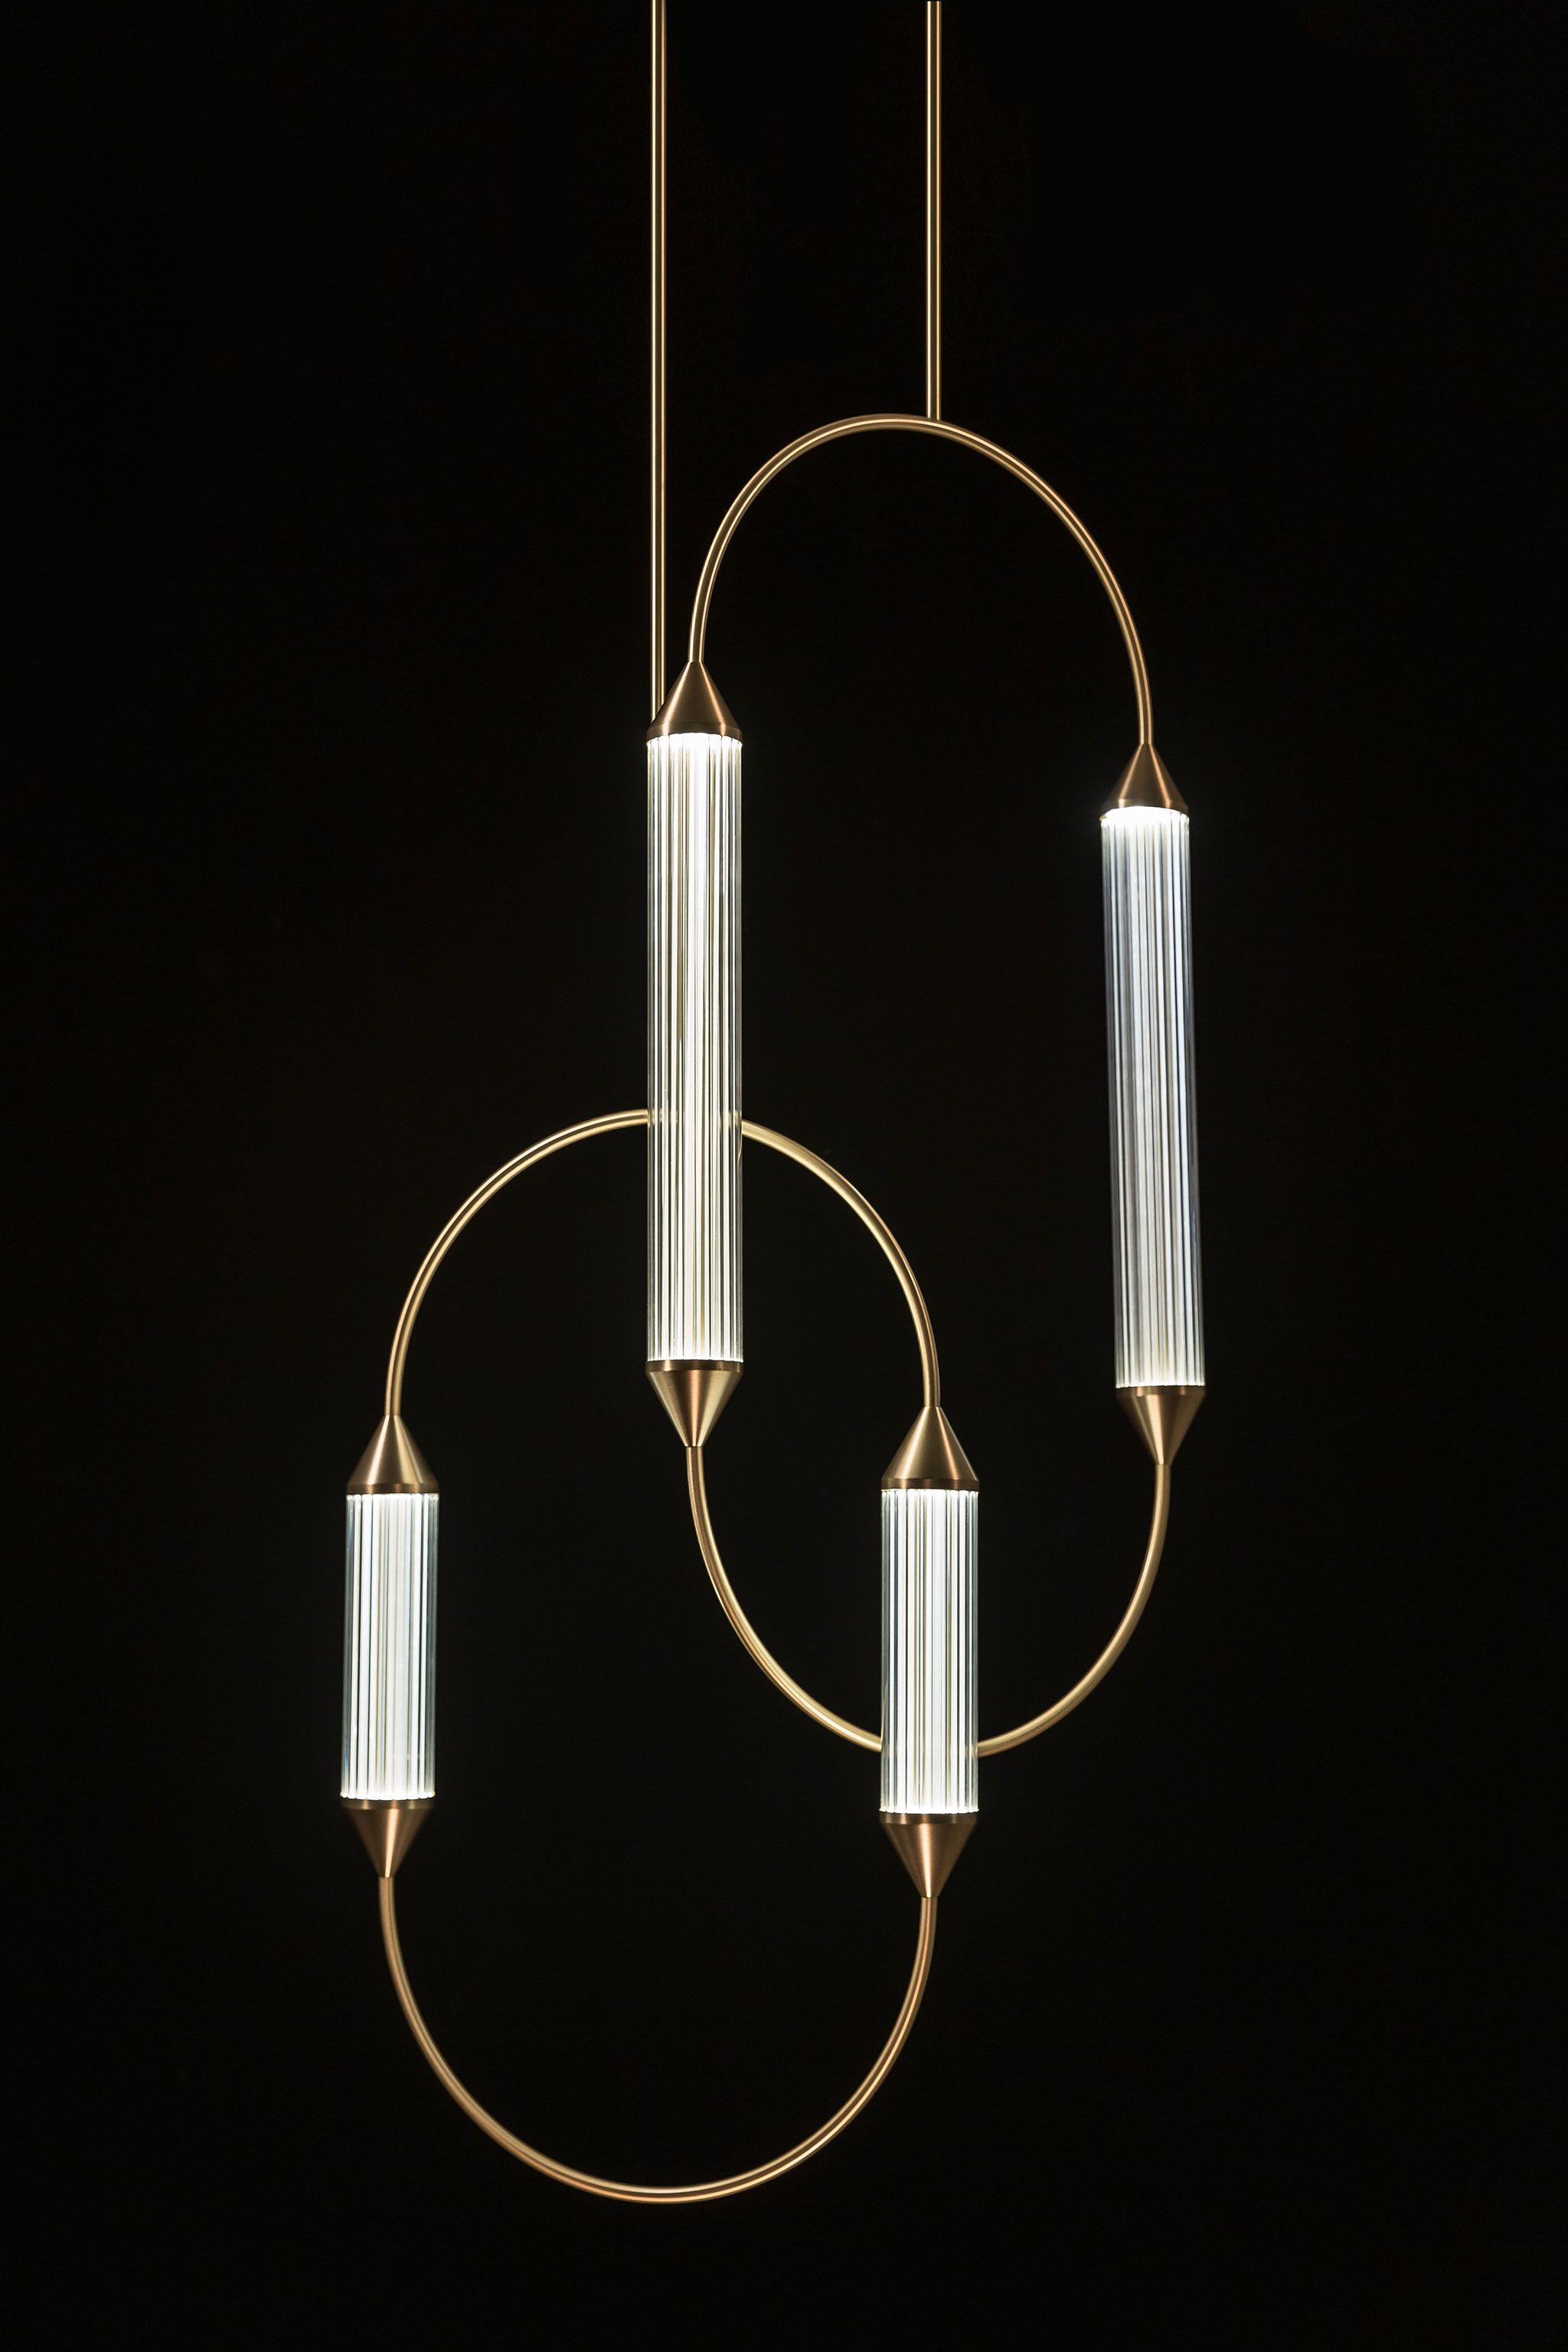 Bauhaus pendant lamp marianne brandt and hans przyrembel 1925 - Cirque By Giopato Coombes